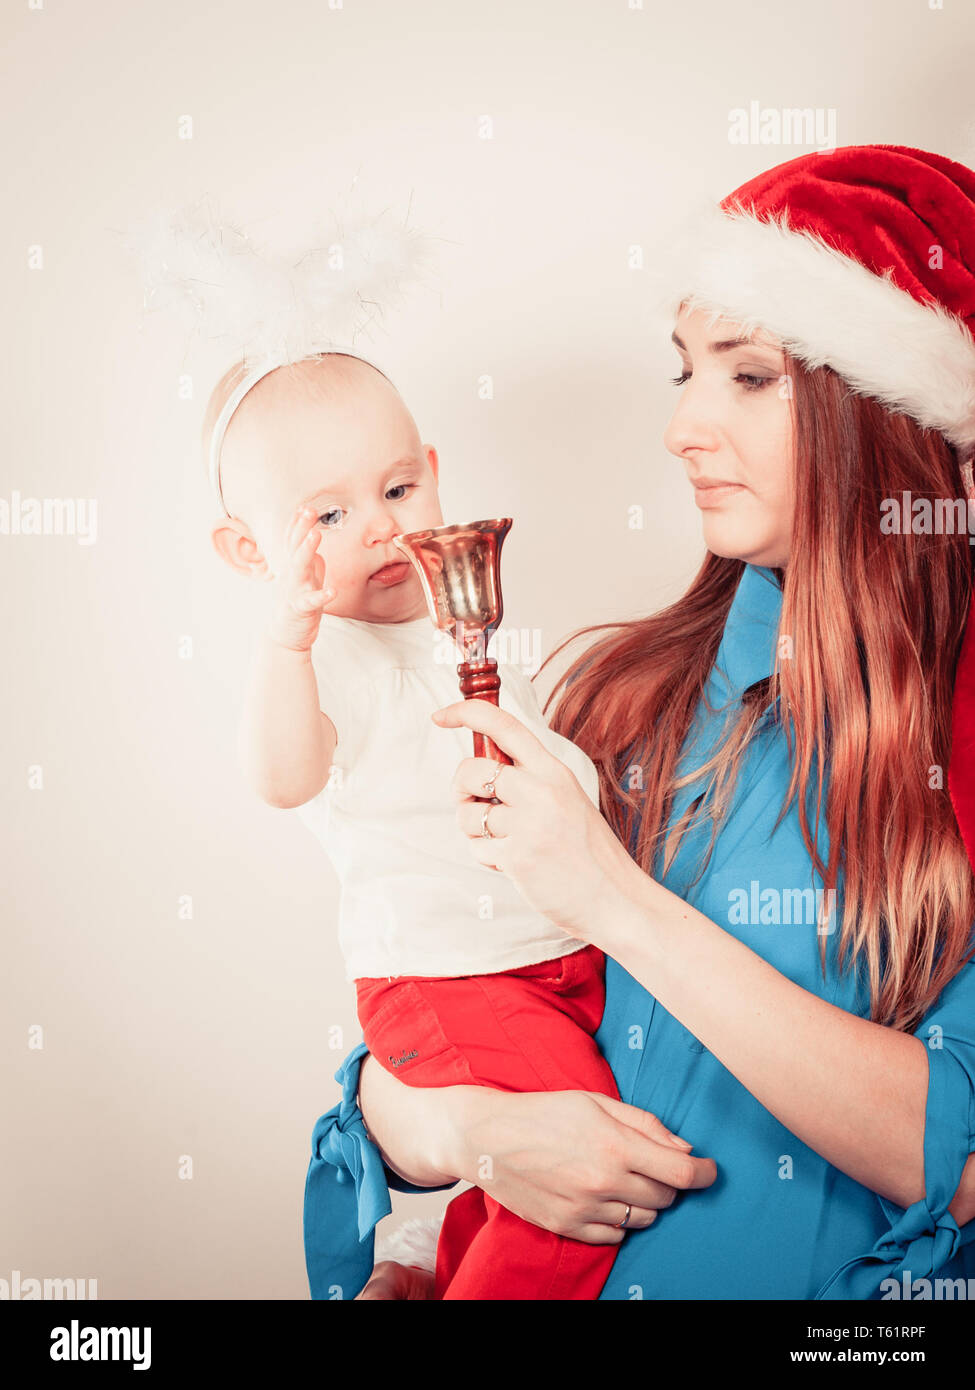 81e5b2928 Christmas woman with cute baby. Beautiful lady has red santa claus cap.